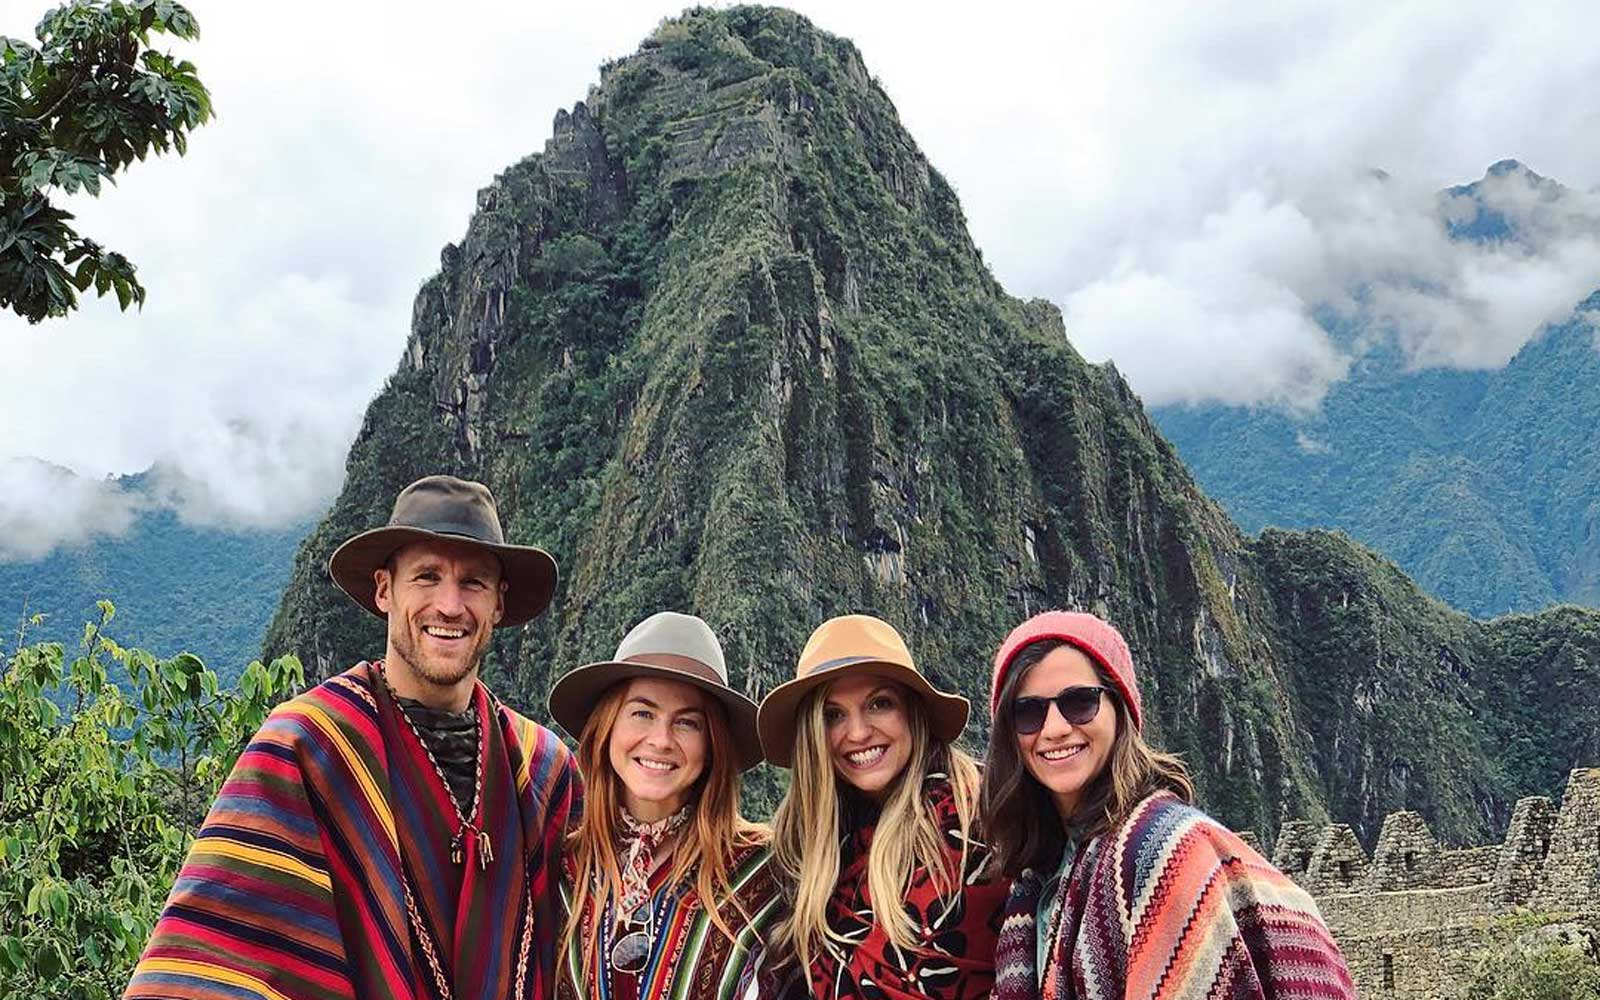 Julianne Hough, Brooks Laich, and their friends in Peru